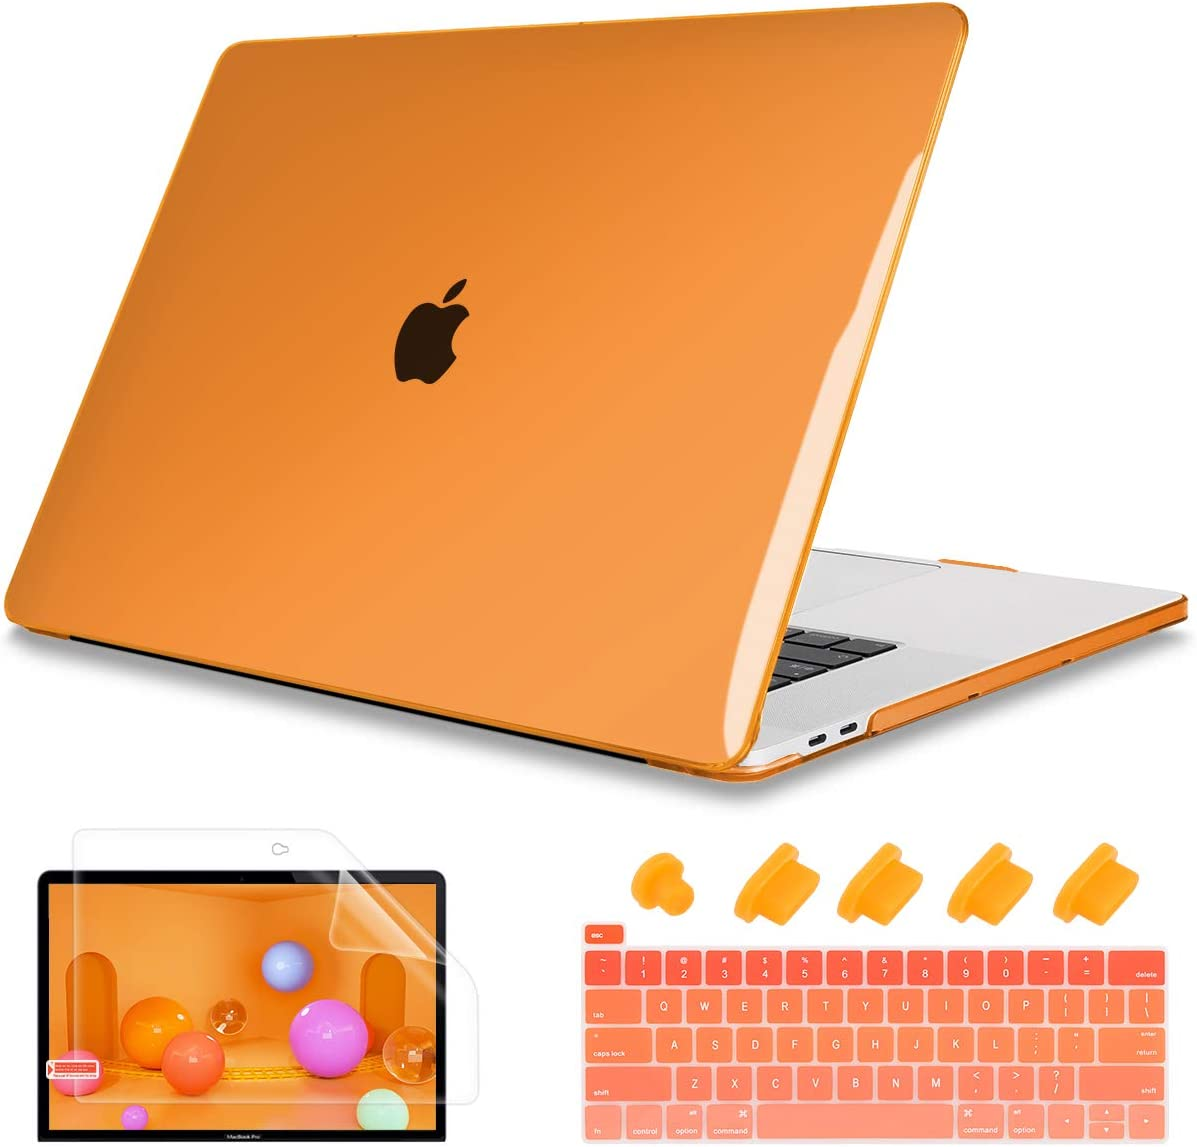 "May Chen MacBook Pro 13 Inch Case Model A2289/A2251 2020 Release,Plastic Hard Shell Case Cover wtih Keyboard Cover for MacBook Pro 13"" with Retina Display & Touch Bar Fits Touch ID,Orange"